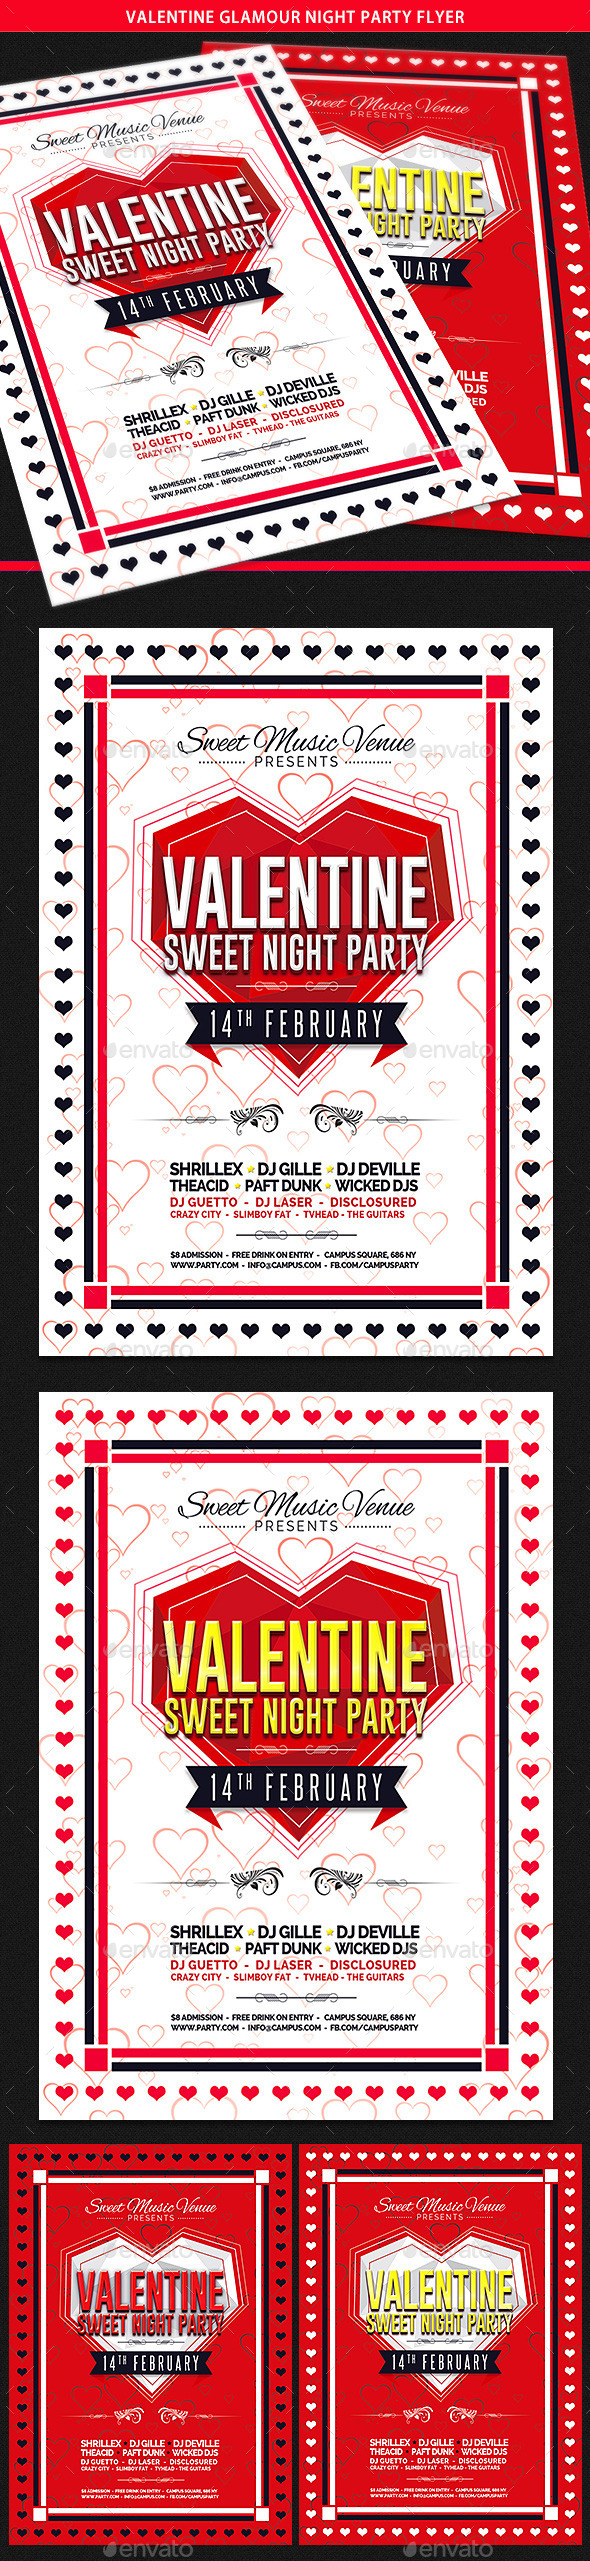 Valentine Glamour Nights Party Flyer - Clubs & Parties Events